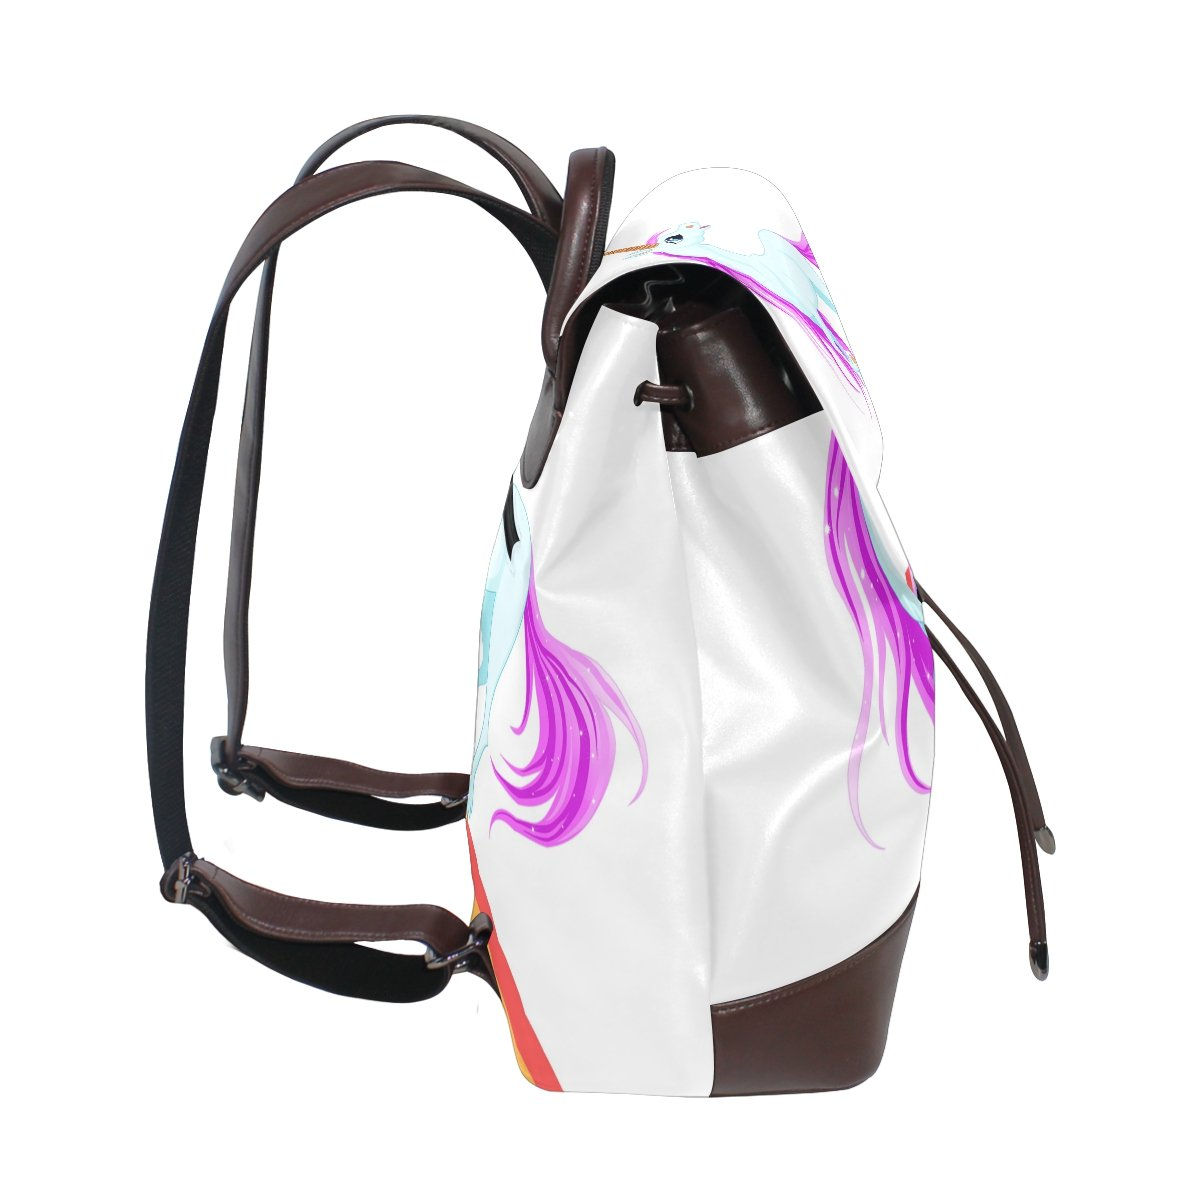 imobaby Fashion Blue Unicorn PU Leather Women Girls Ladies Backpack Travel bag,Multi065